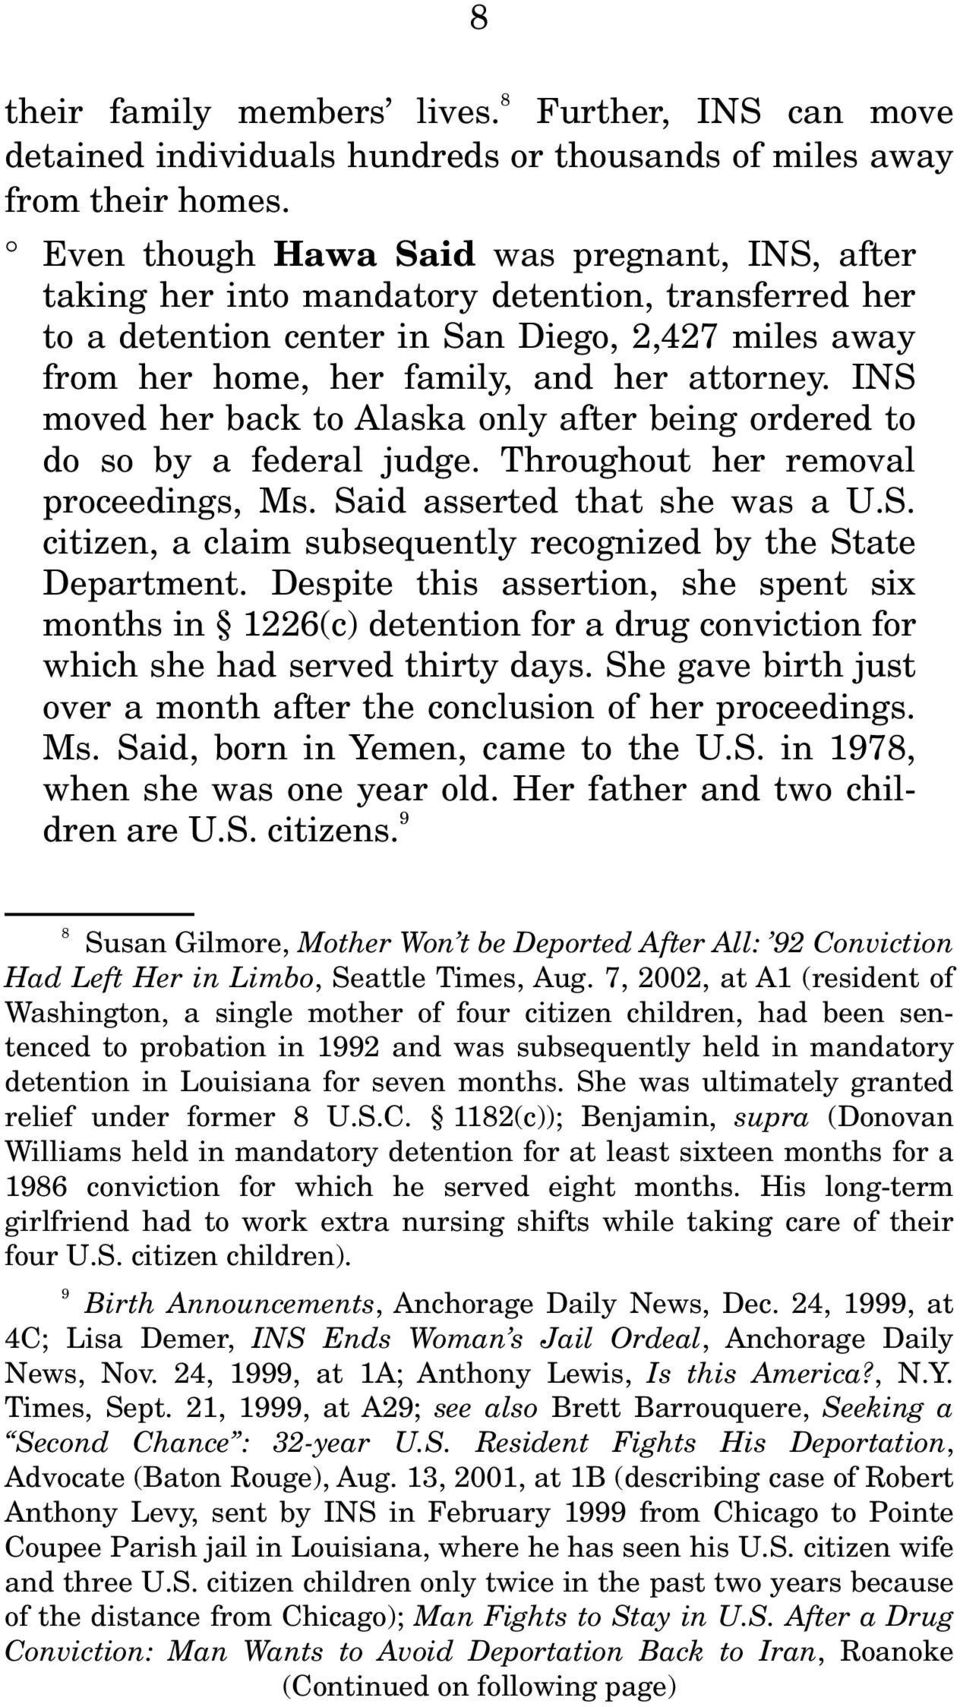 INS moved her back to Alaska only after being ordered to do so by a federal judge. Throughout her removal proceedings, Ms. Said asserted that she was a U.S. citizen, a claim subsequently recognized by the State Department.